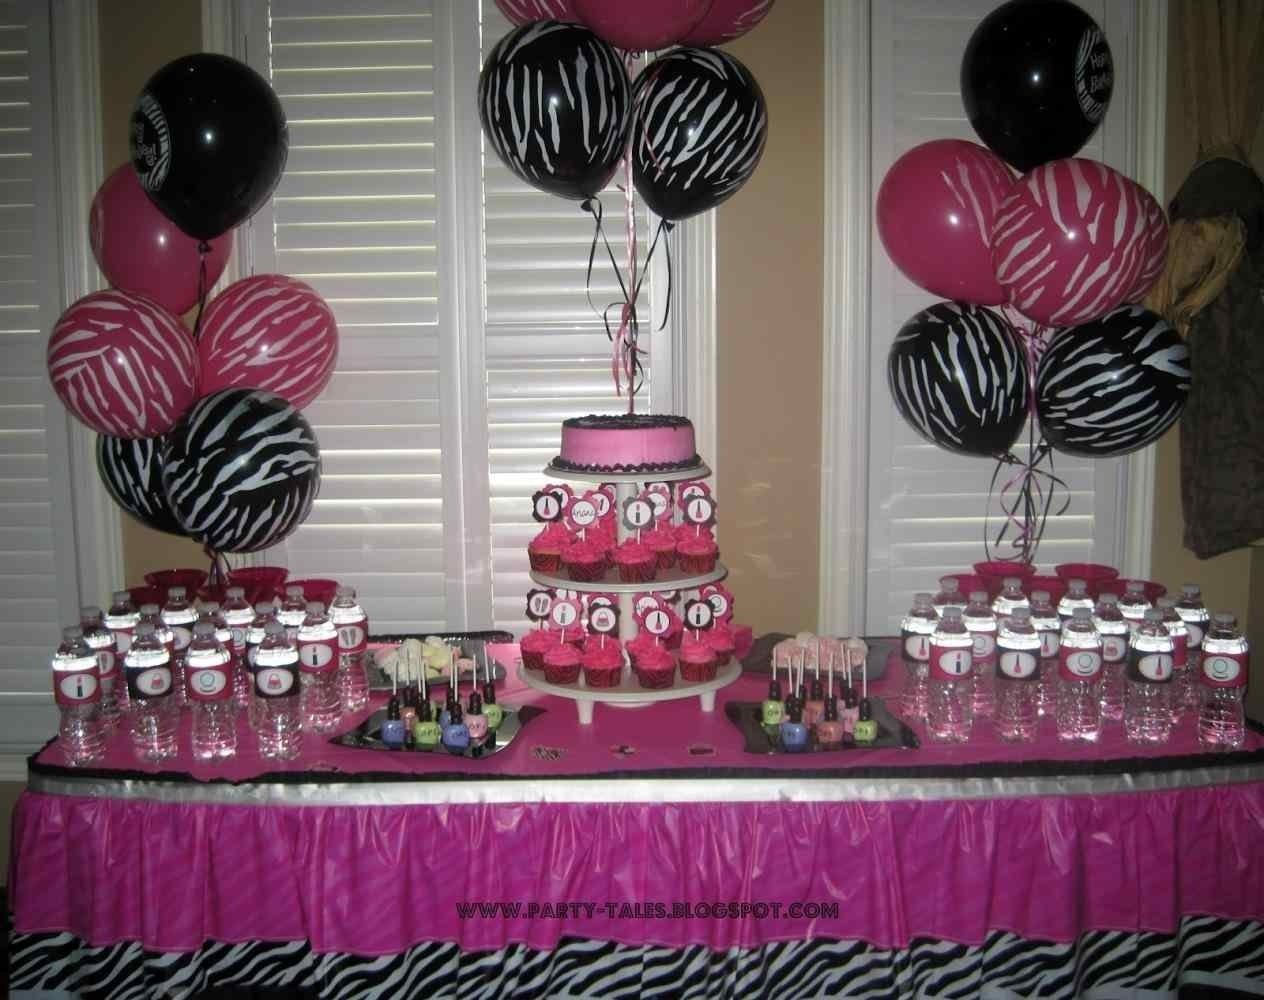 10 Lovely Girls 13Th Birthday Party Ideas st images on pinterest best unique 13th birthday party themes girls